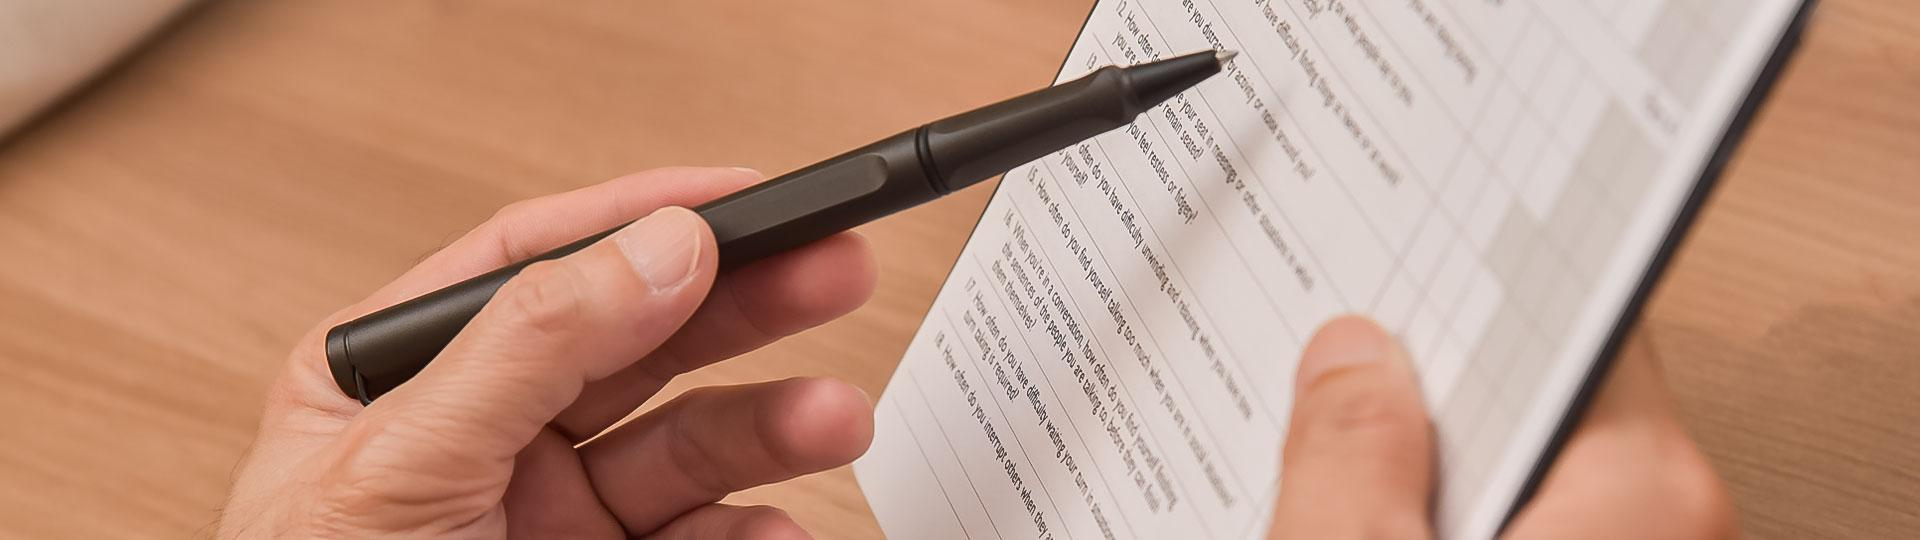 Zoomed in Image of a hand holding a pen and a clipboard